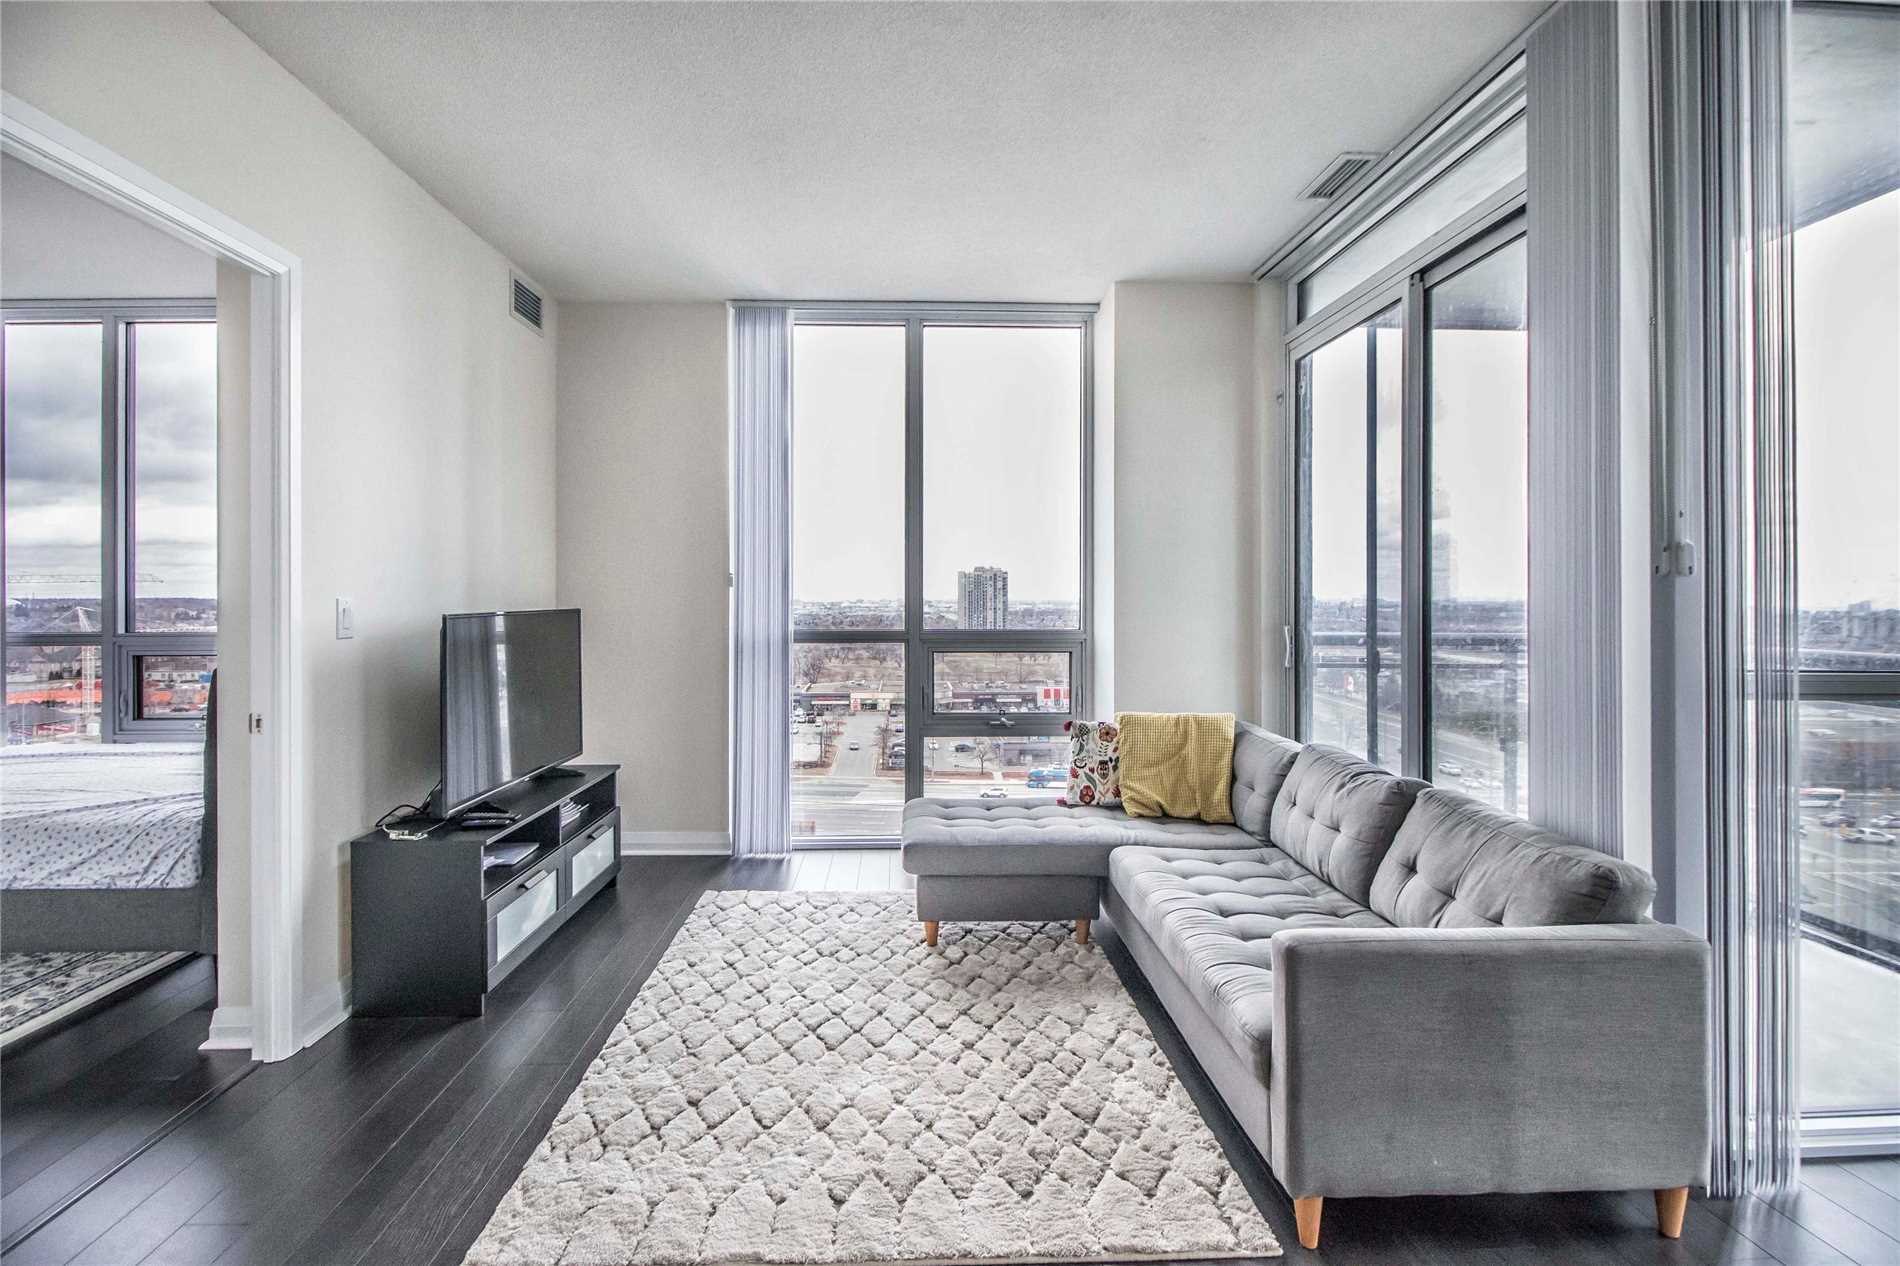 #1104 - 5025 Four Springs Ave, Mississauga W4410129